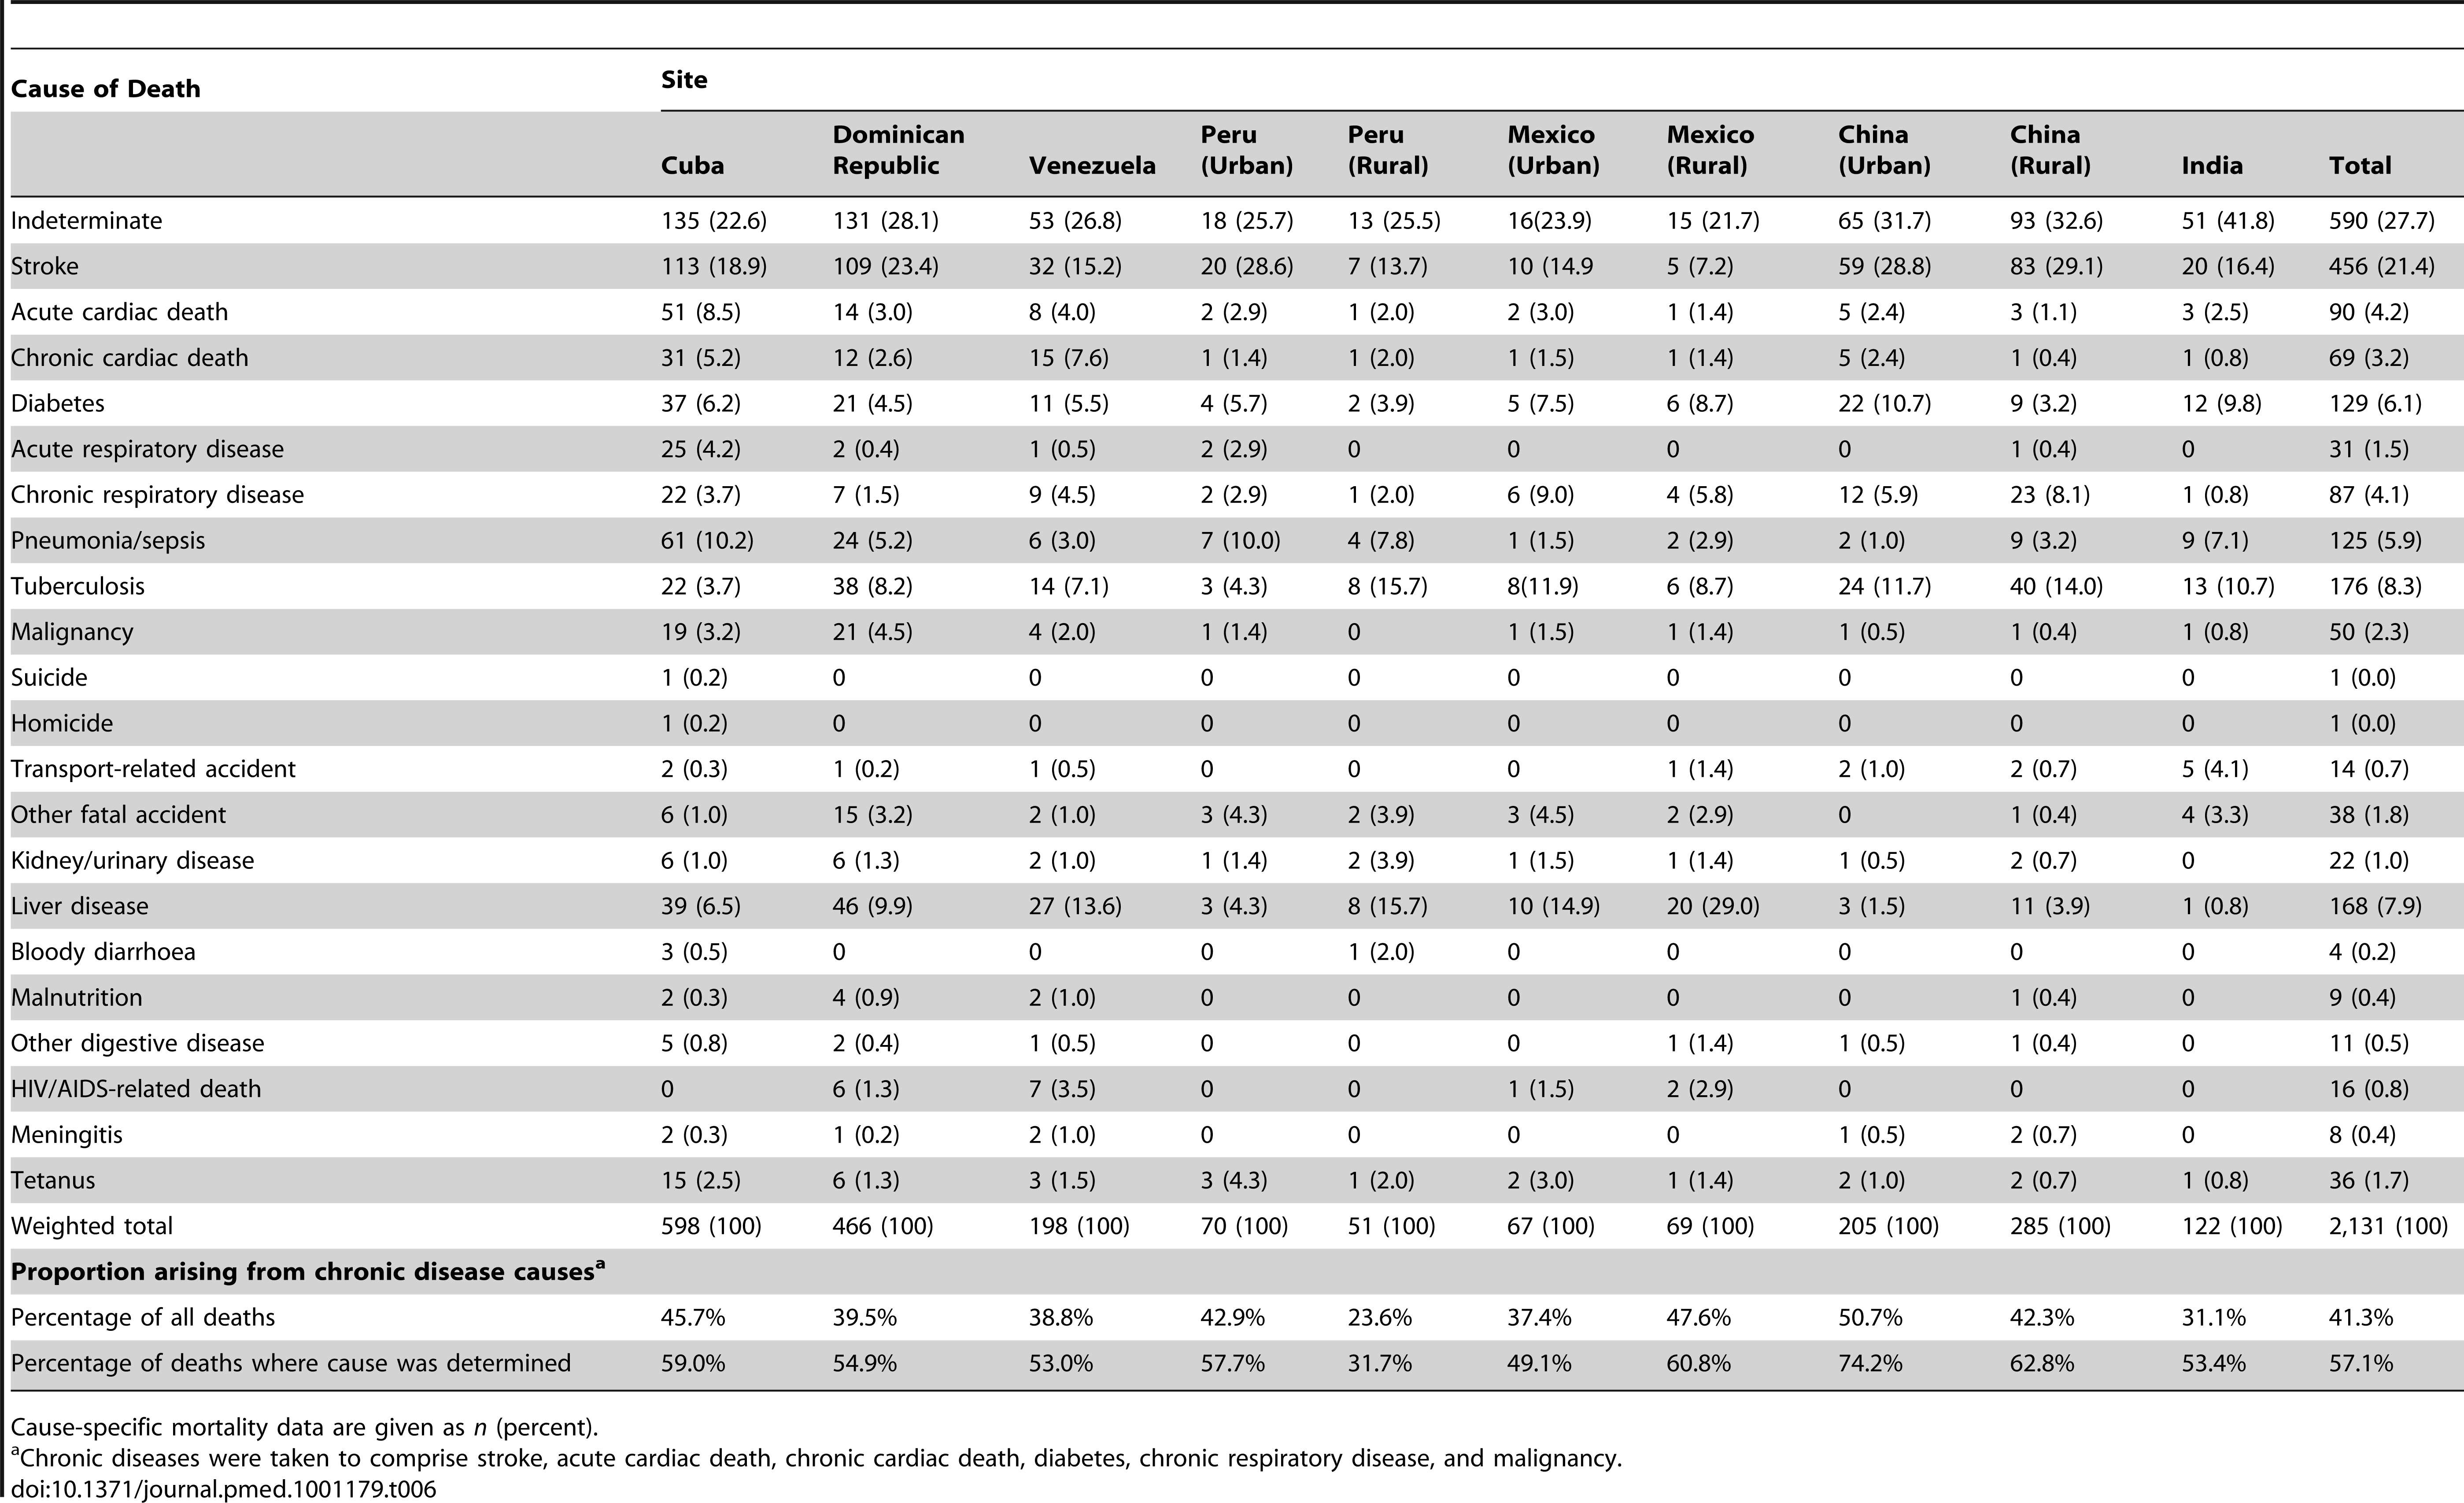 Cause-specific mortality fractions as interpreted probabilistically by the InterVA model for each site.